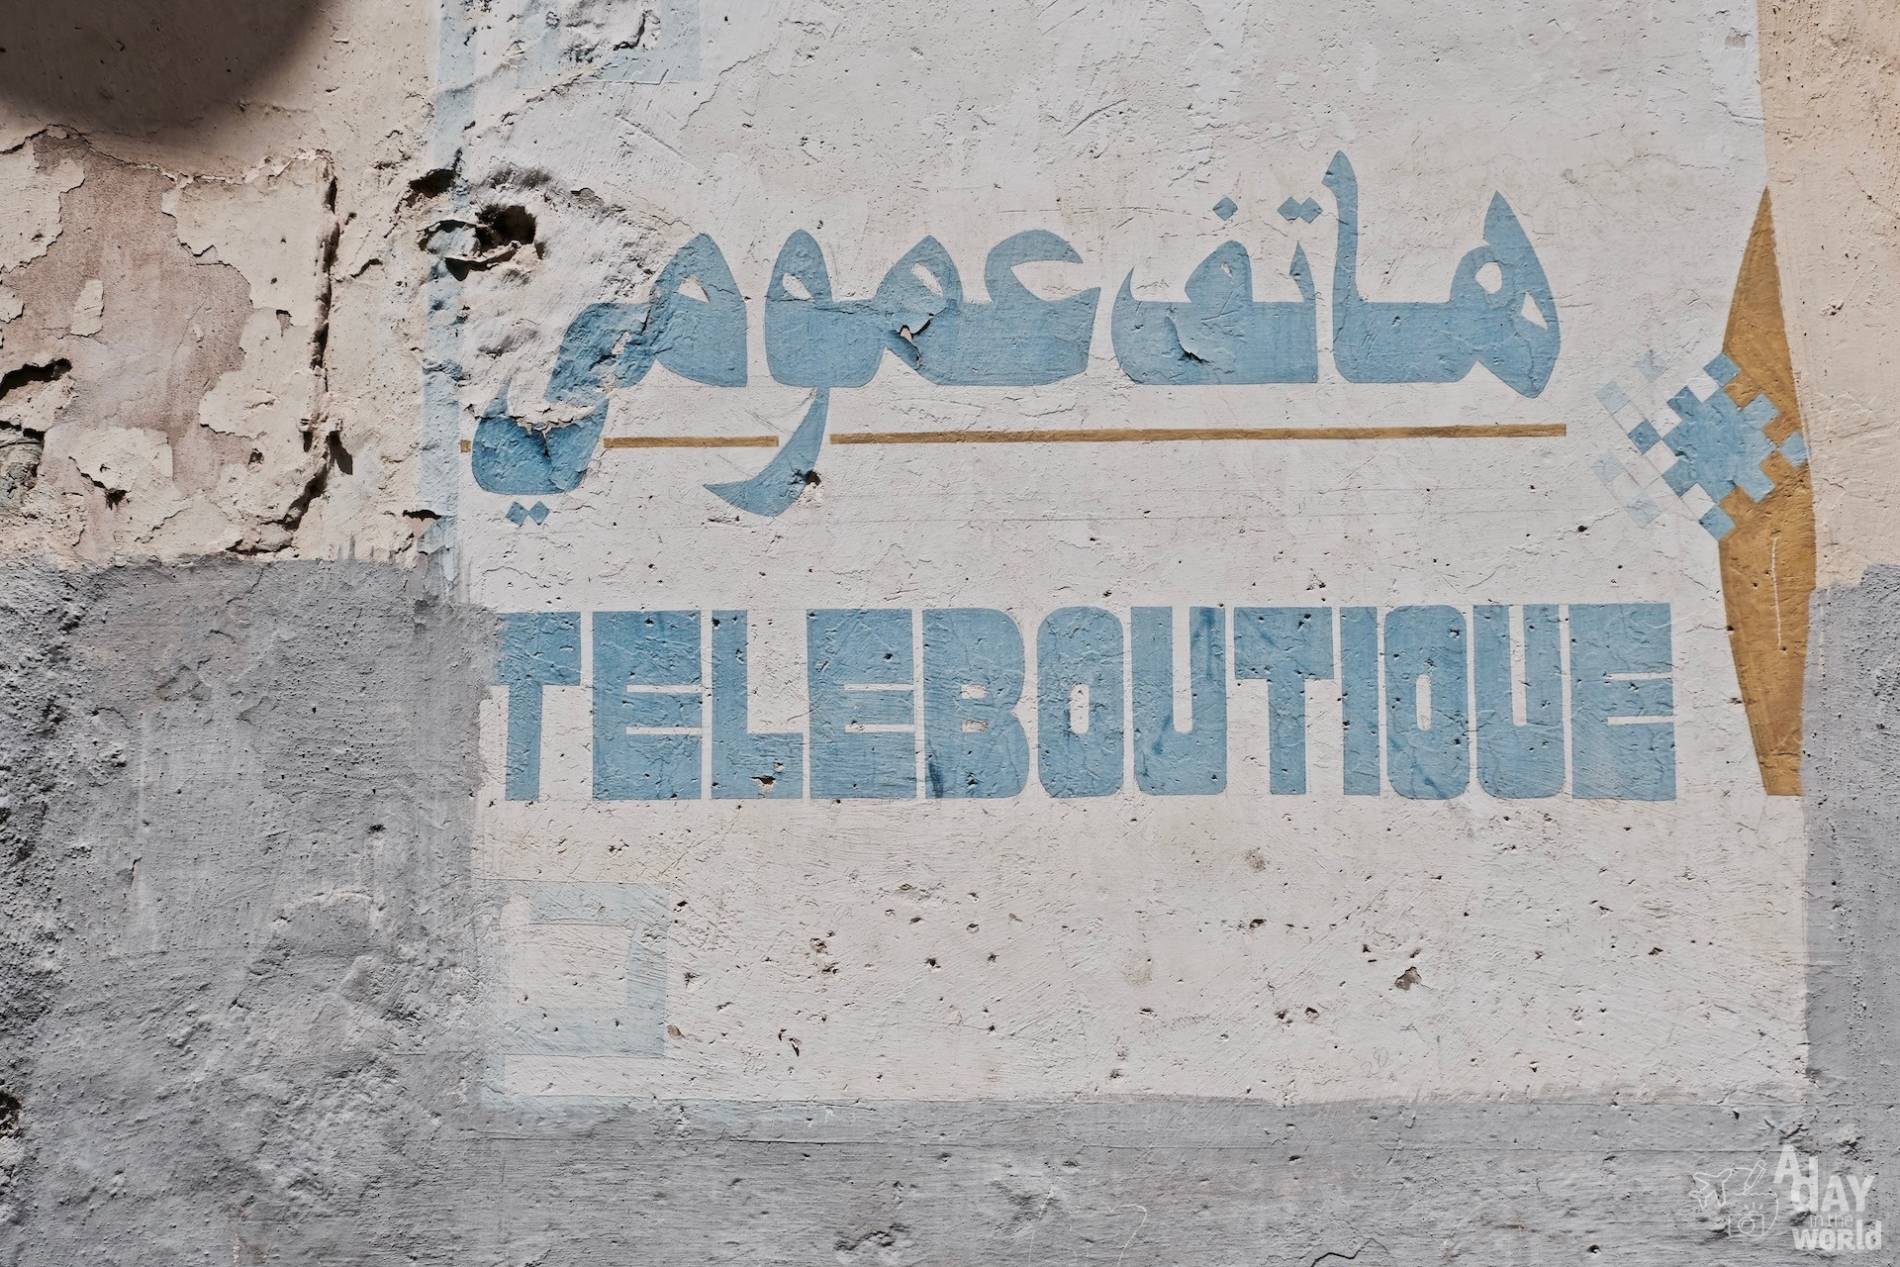 teleboutique fes